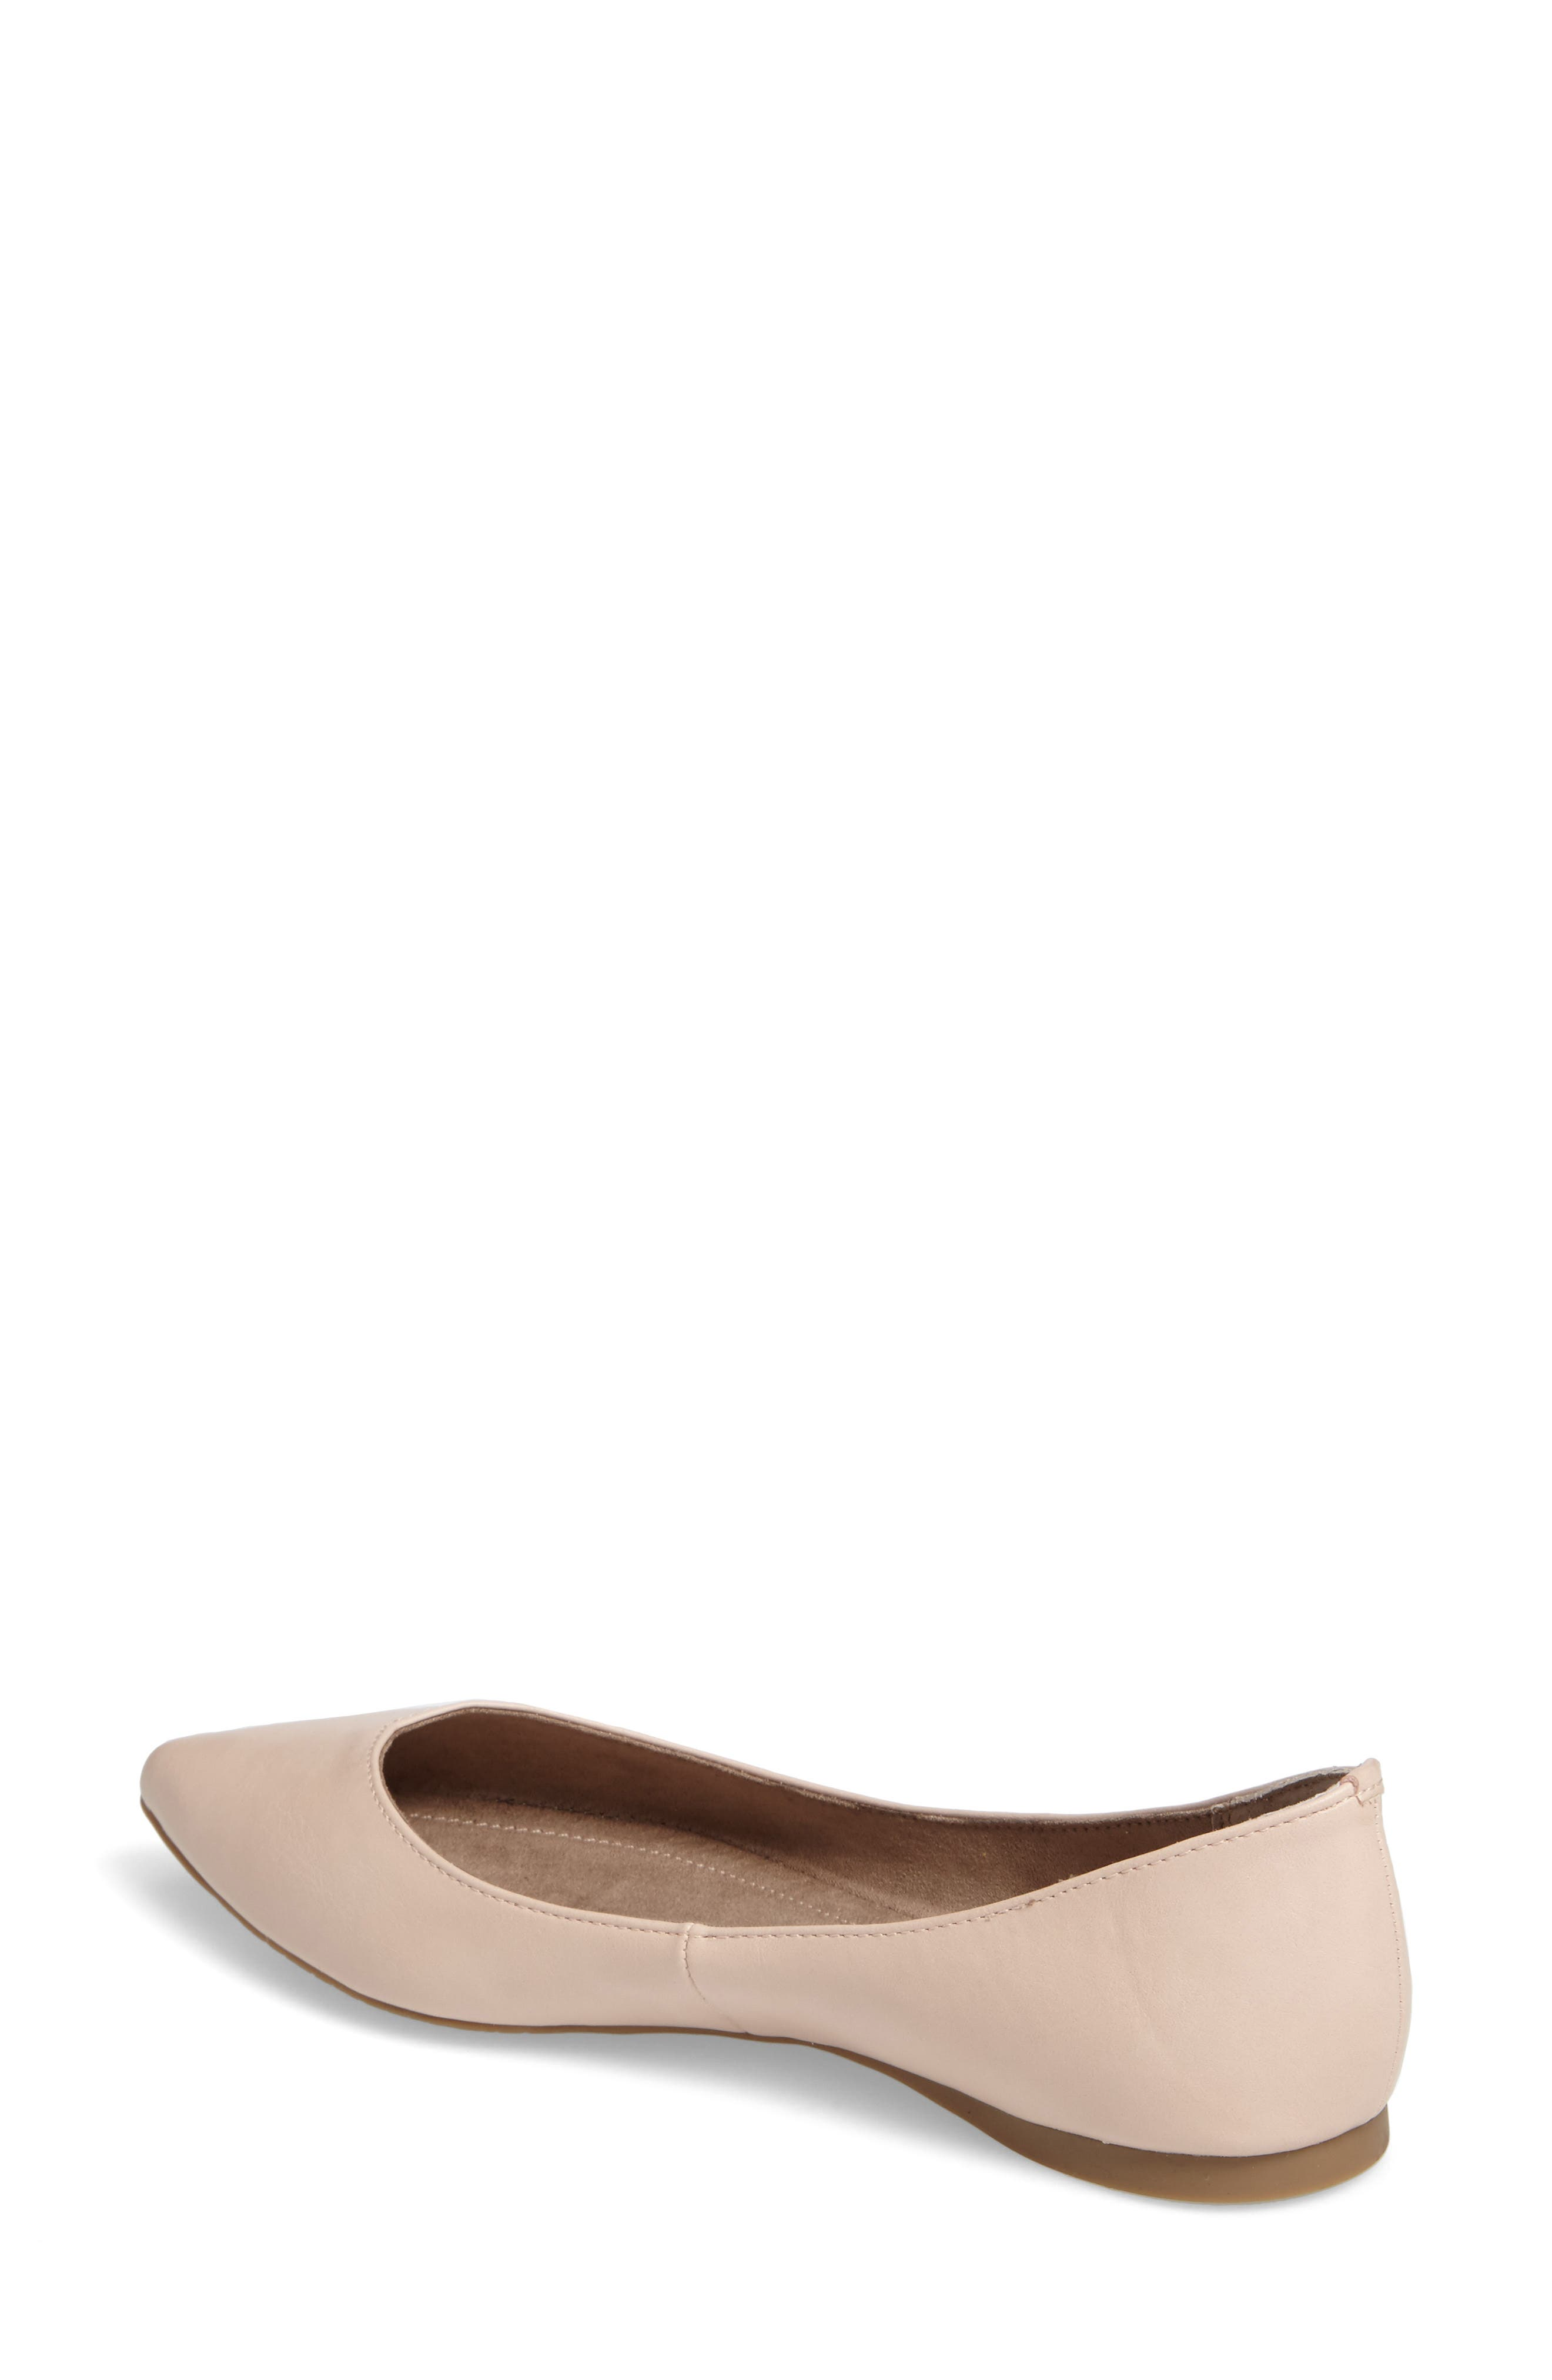 'Moveover' Pointy Toe Flat,                             Alternate thumbnail 24, color,